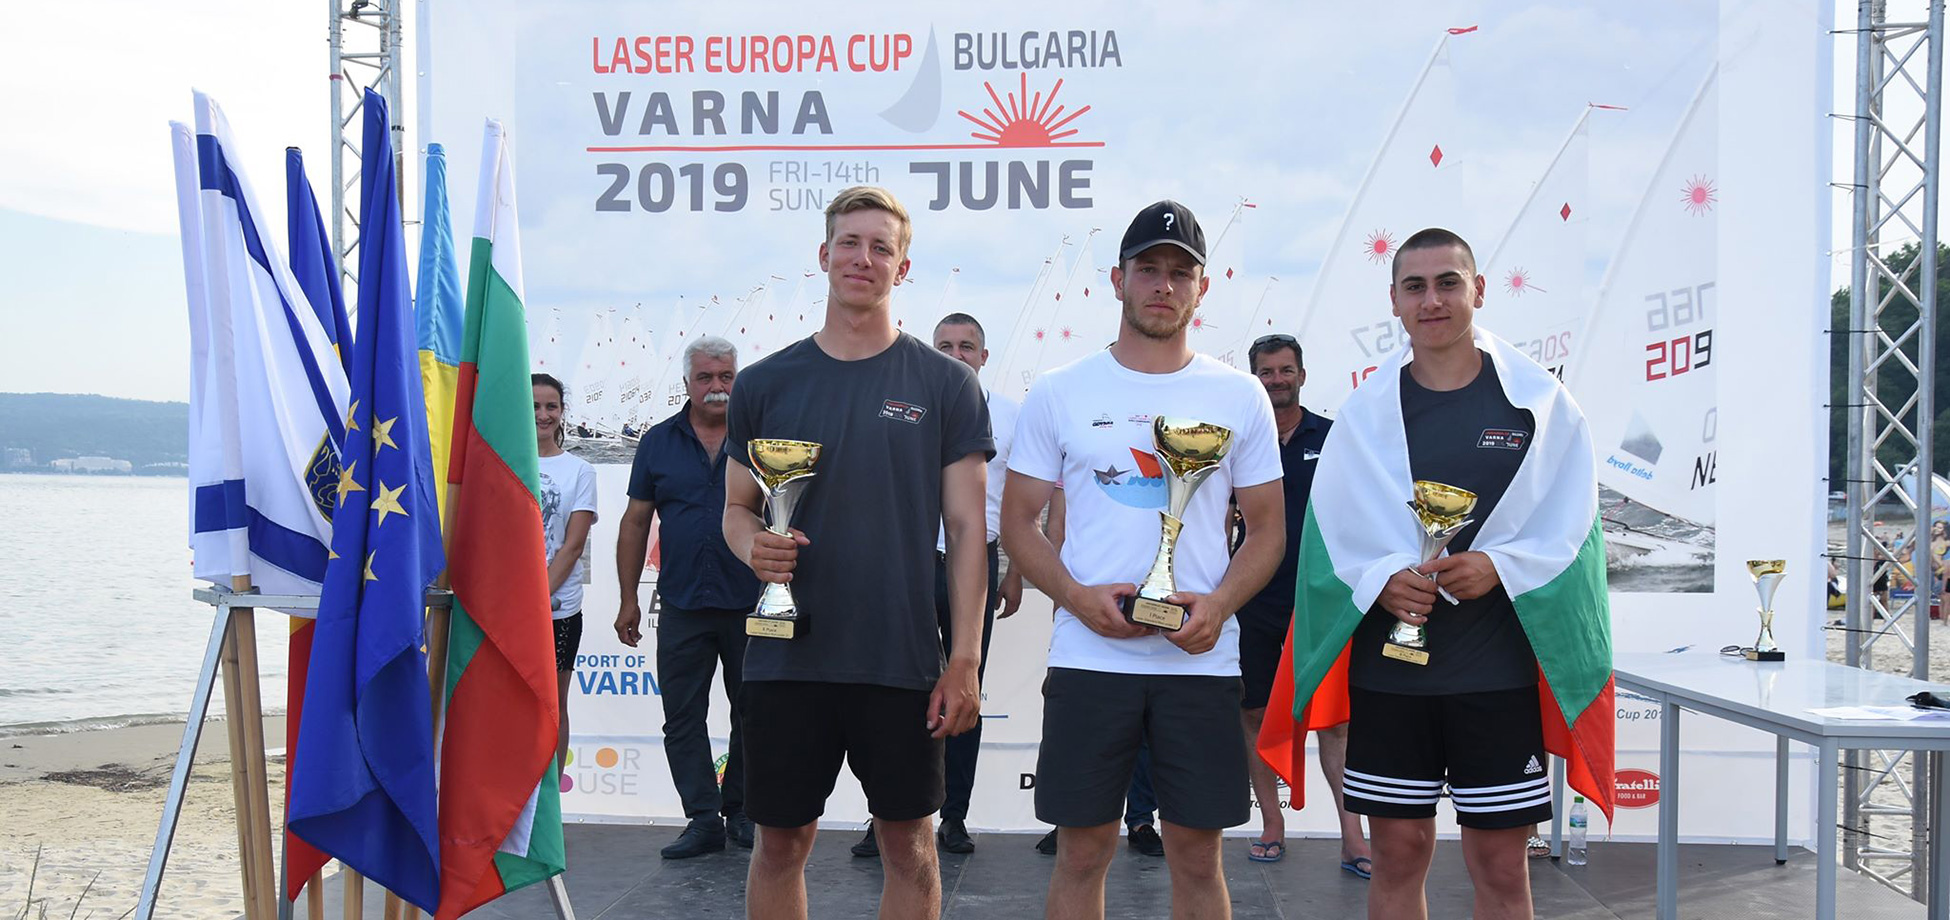 laser europa cup bulgaria results